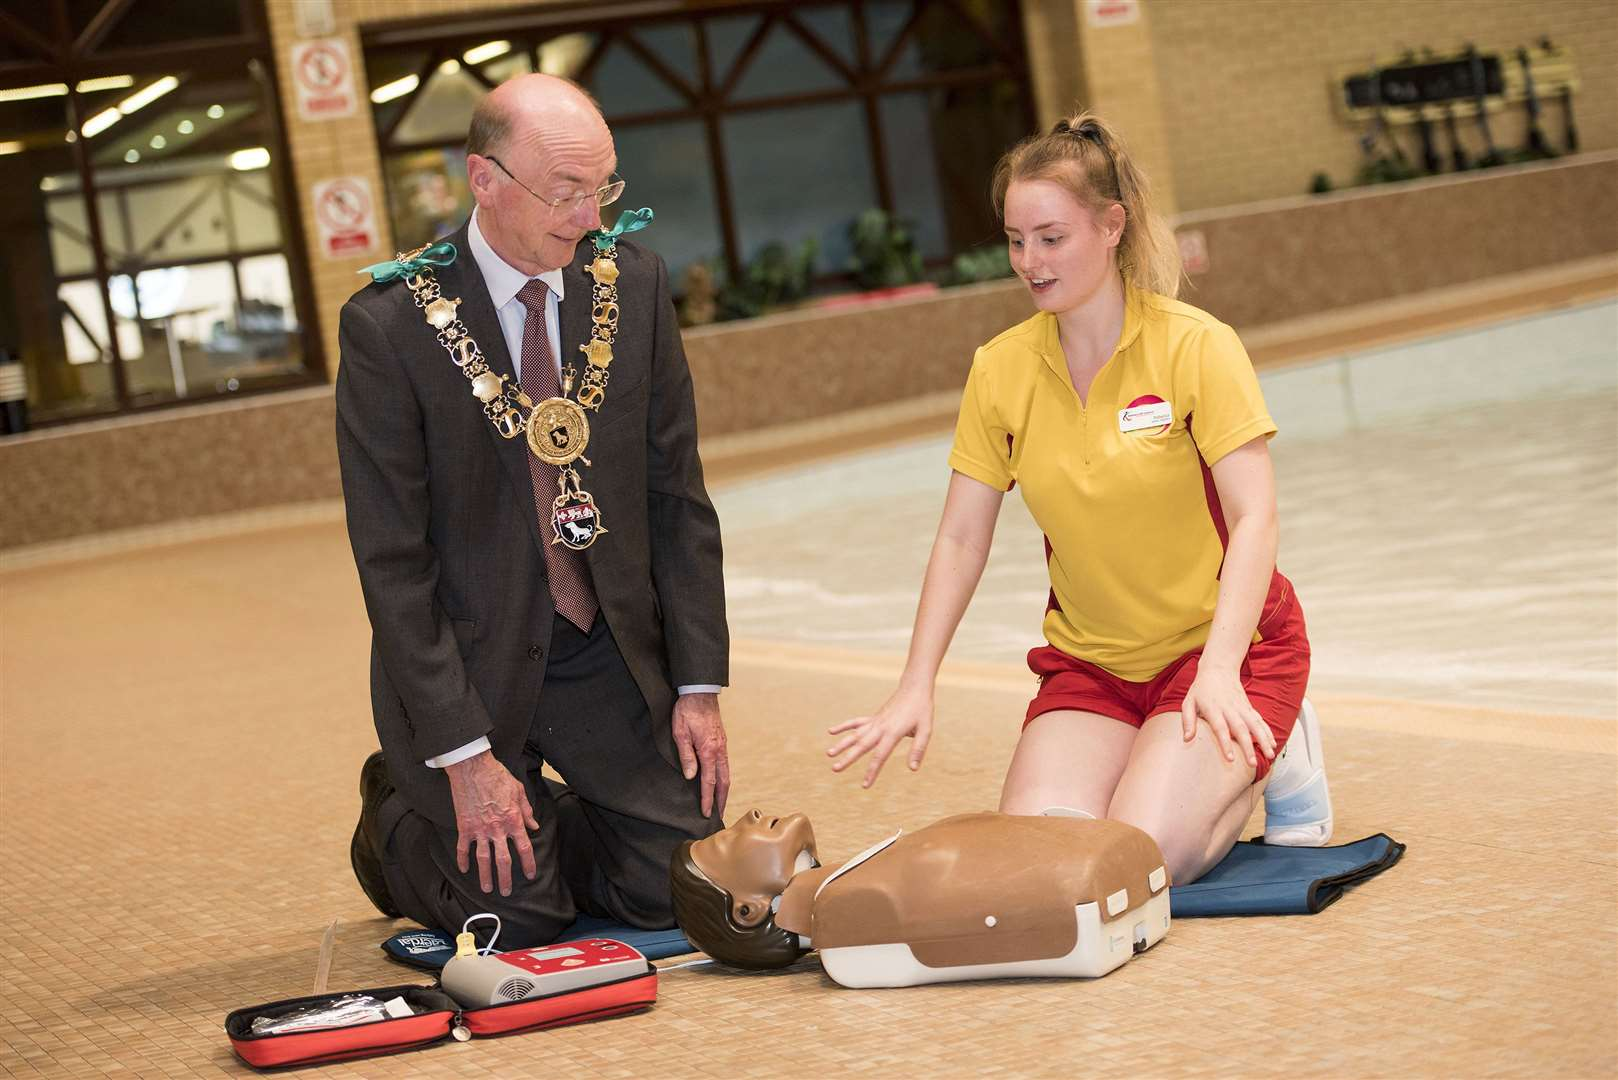 SUDBURY.Kingfisher Leisure Centre, Station Road, Sudbury.Sudbury mayor Robert Spivey has backed a campaign by local resident Andy Read, who survived a cardiac arrest in 2018, to increase the number of 24/7 community defibrillators around the town. Senior lifeguard Rebecca Fox gives Robert a CPR lesson. Picture Mark Westley. (12600336)